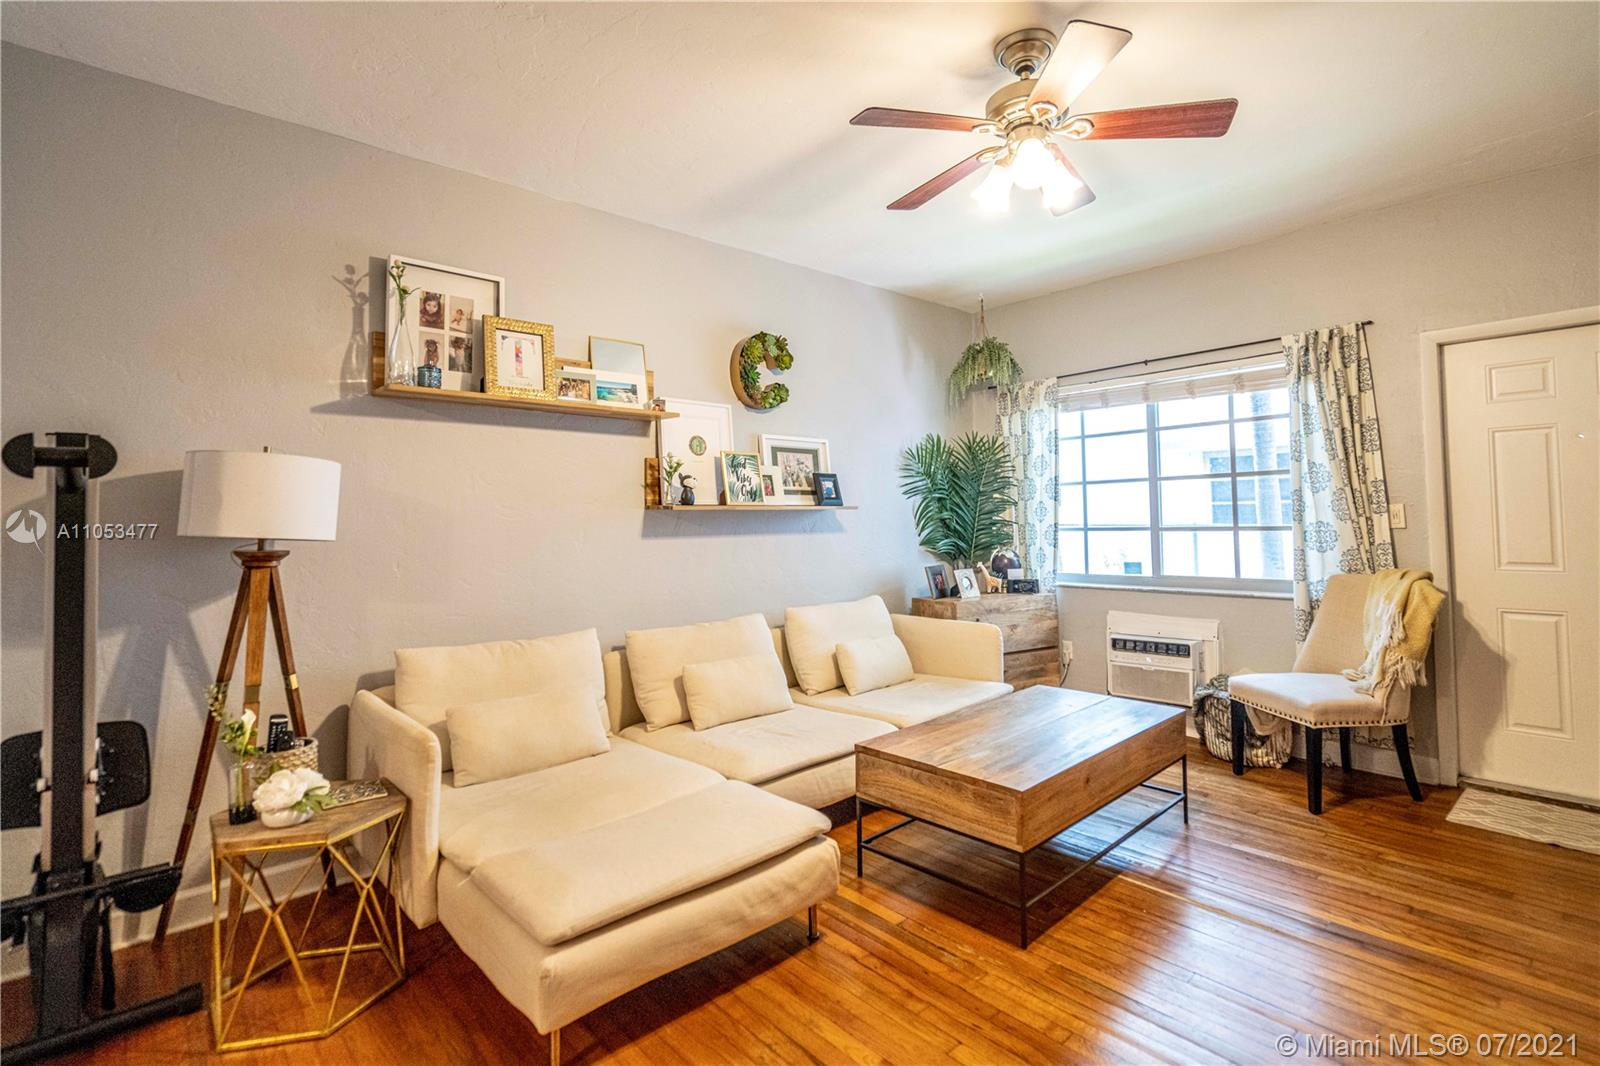 1561  Lenox Ave #6 For Sale A11053477, FL